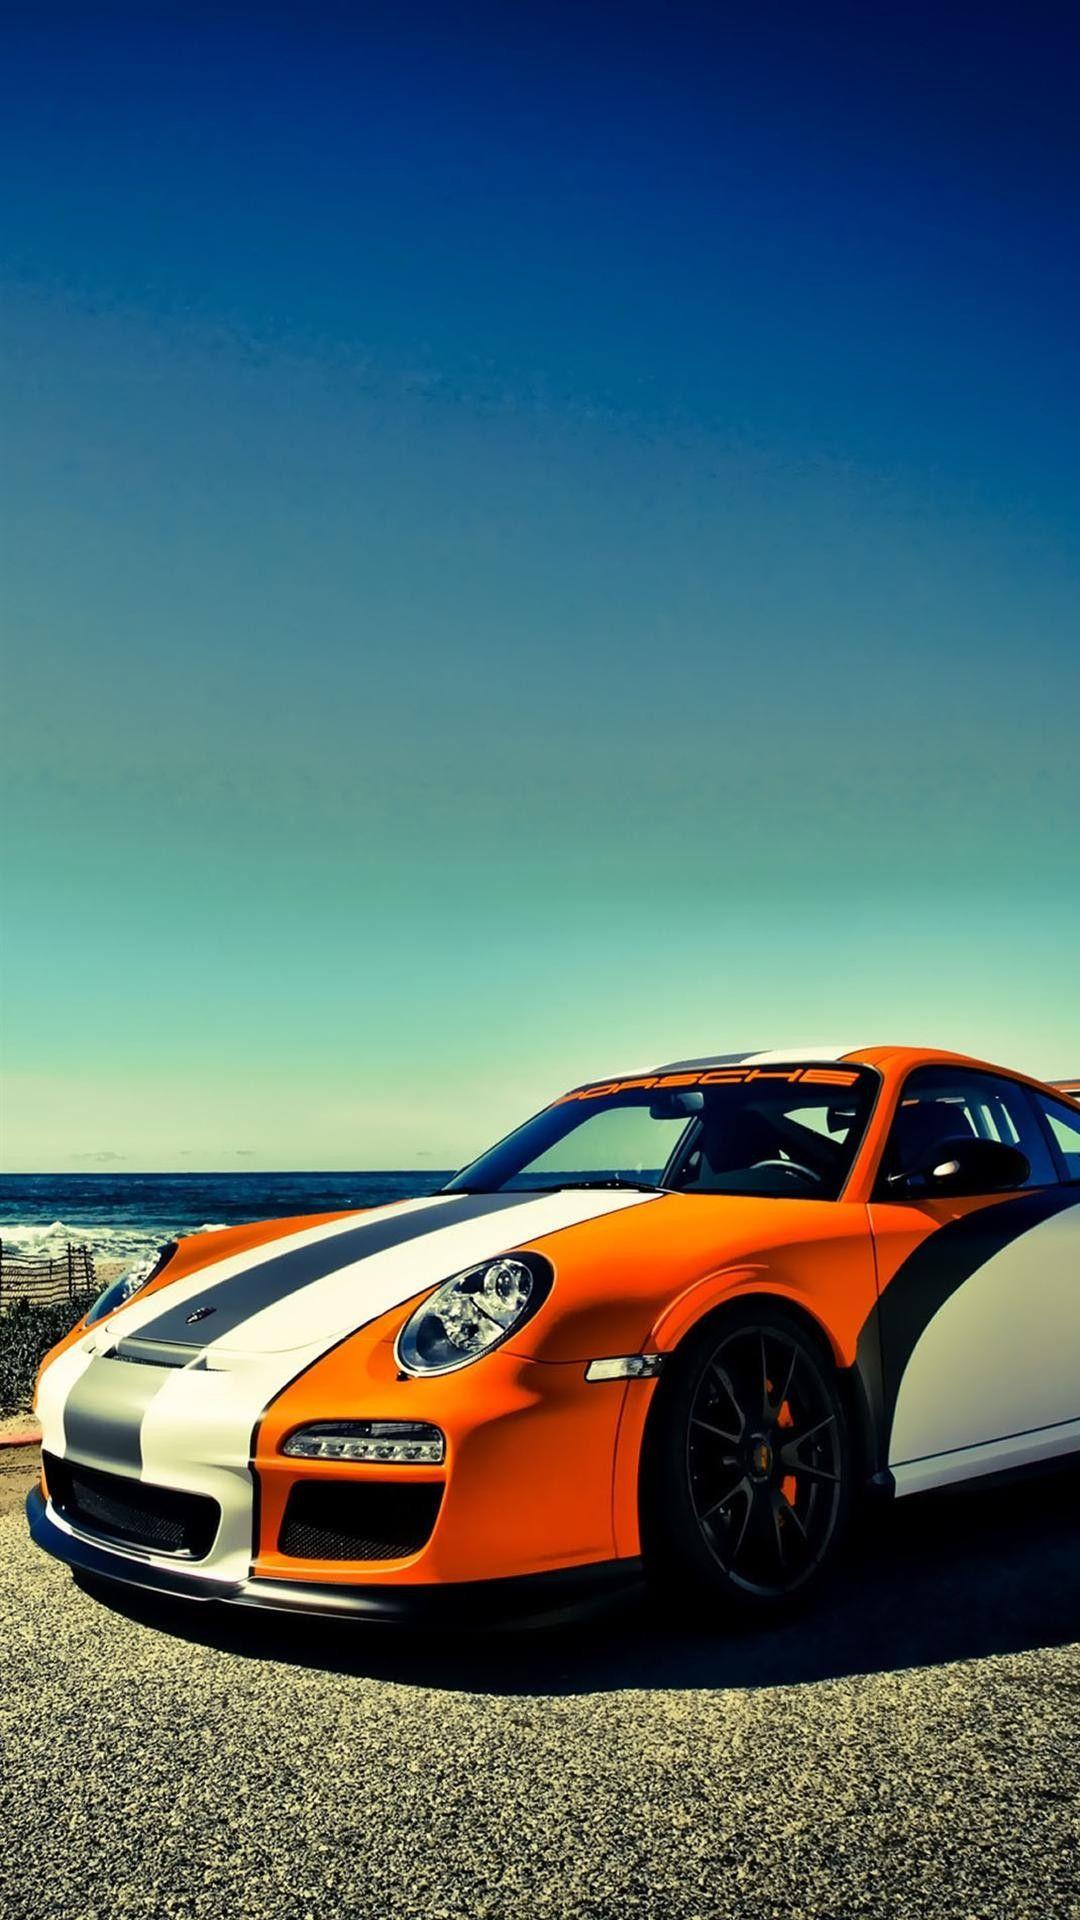 Galaxy Cars Wallpapers Wallpaper Cave